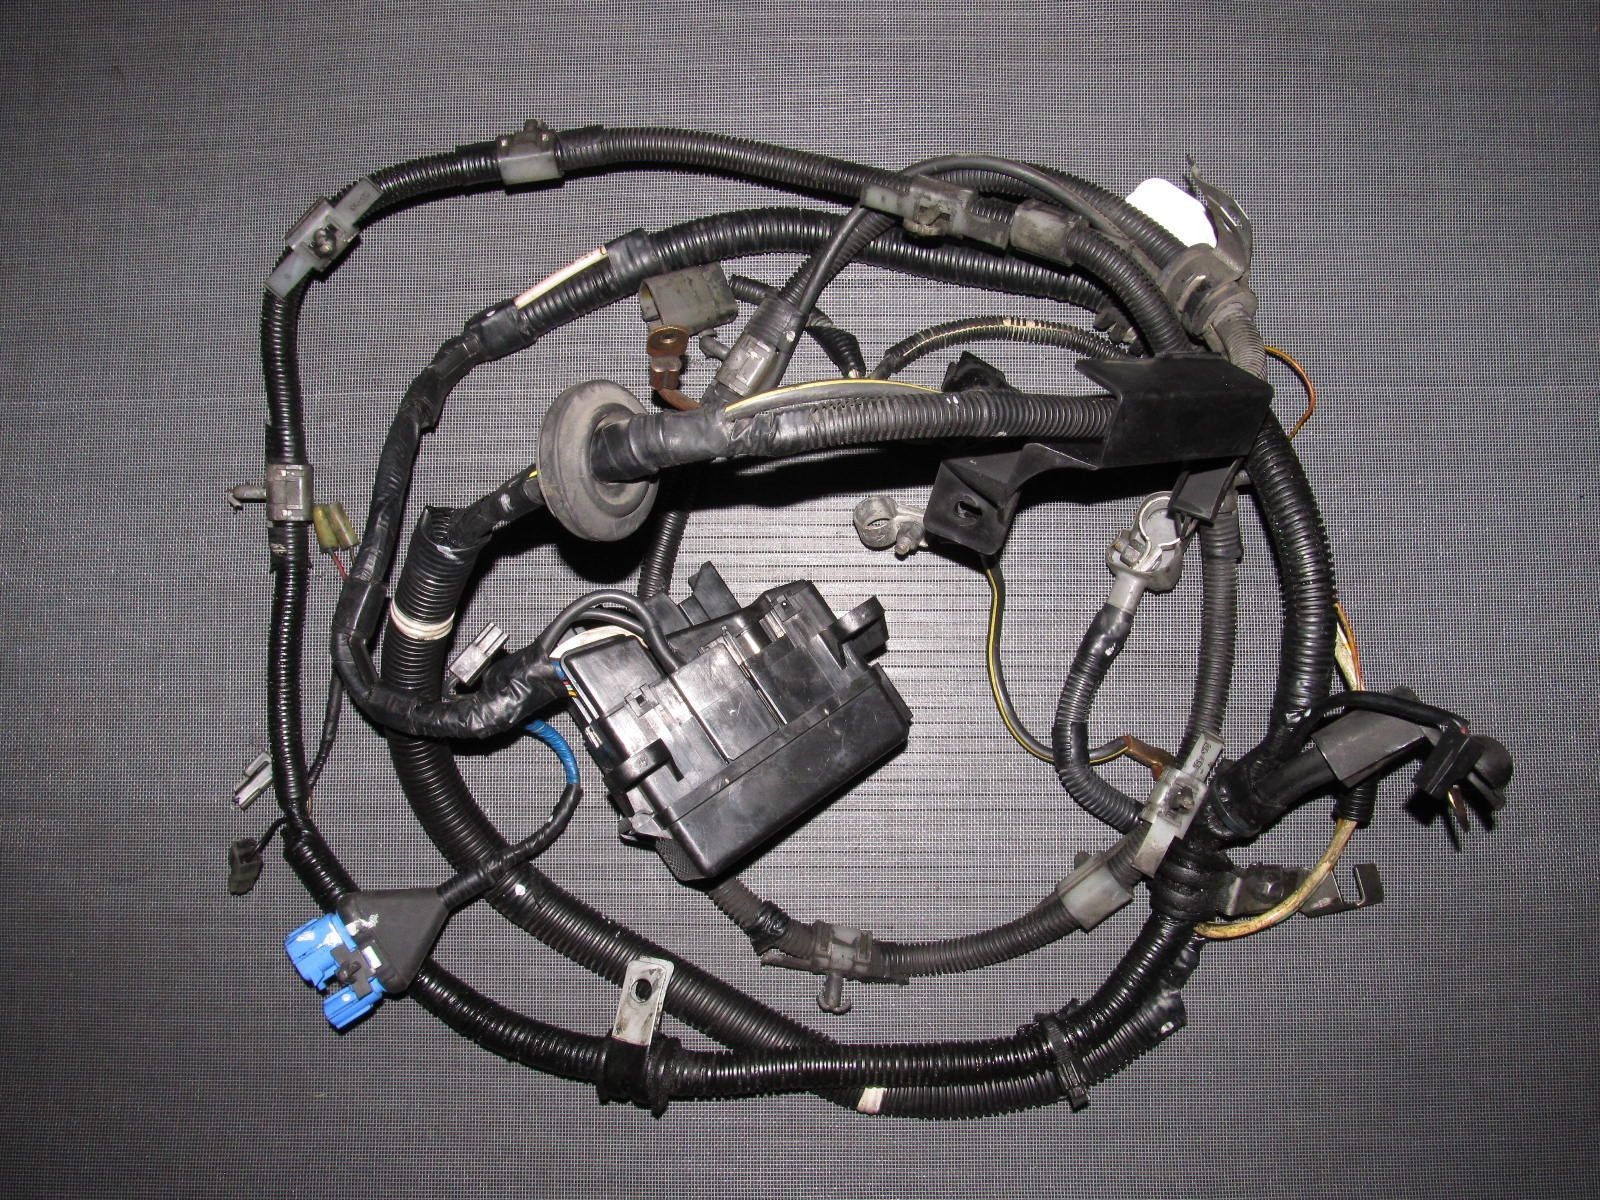 90 91 92 93 Mazda Miata Fuse Box Transmission & Engine Wiring Harness